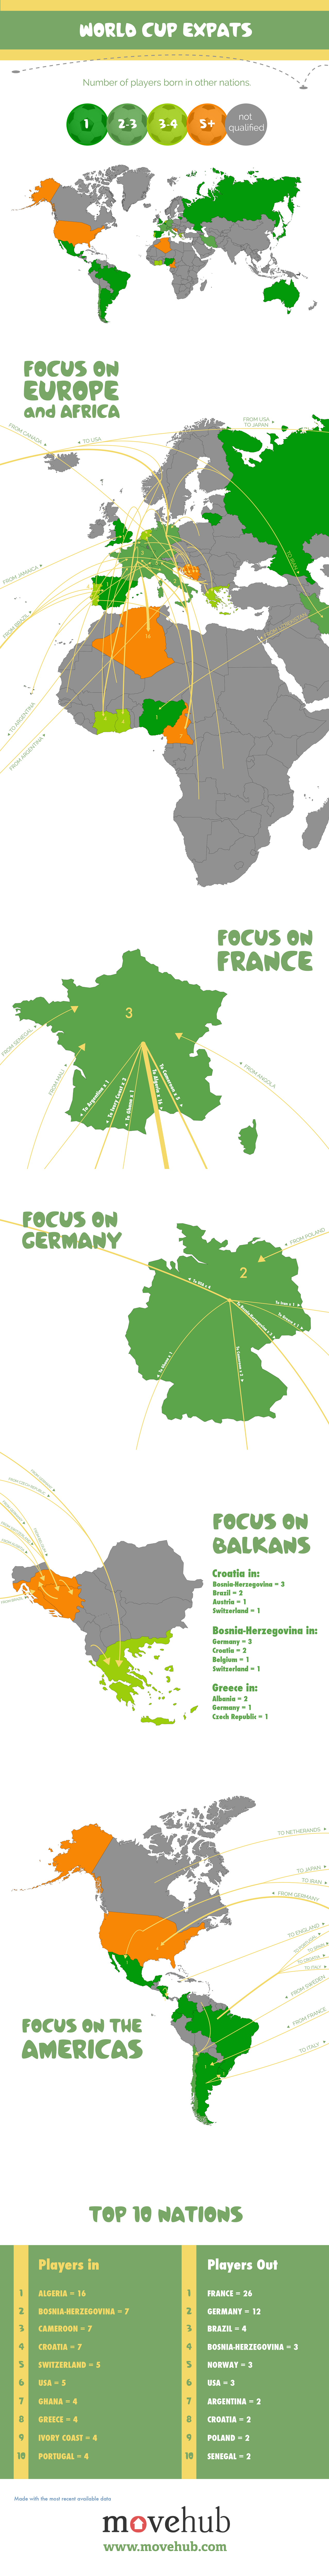 World Cup Expats Infographic